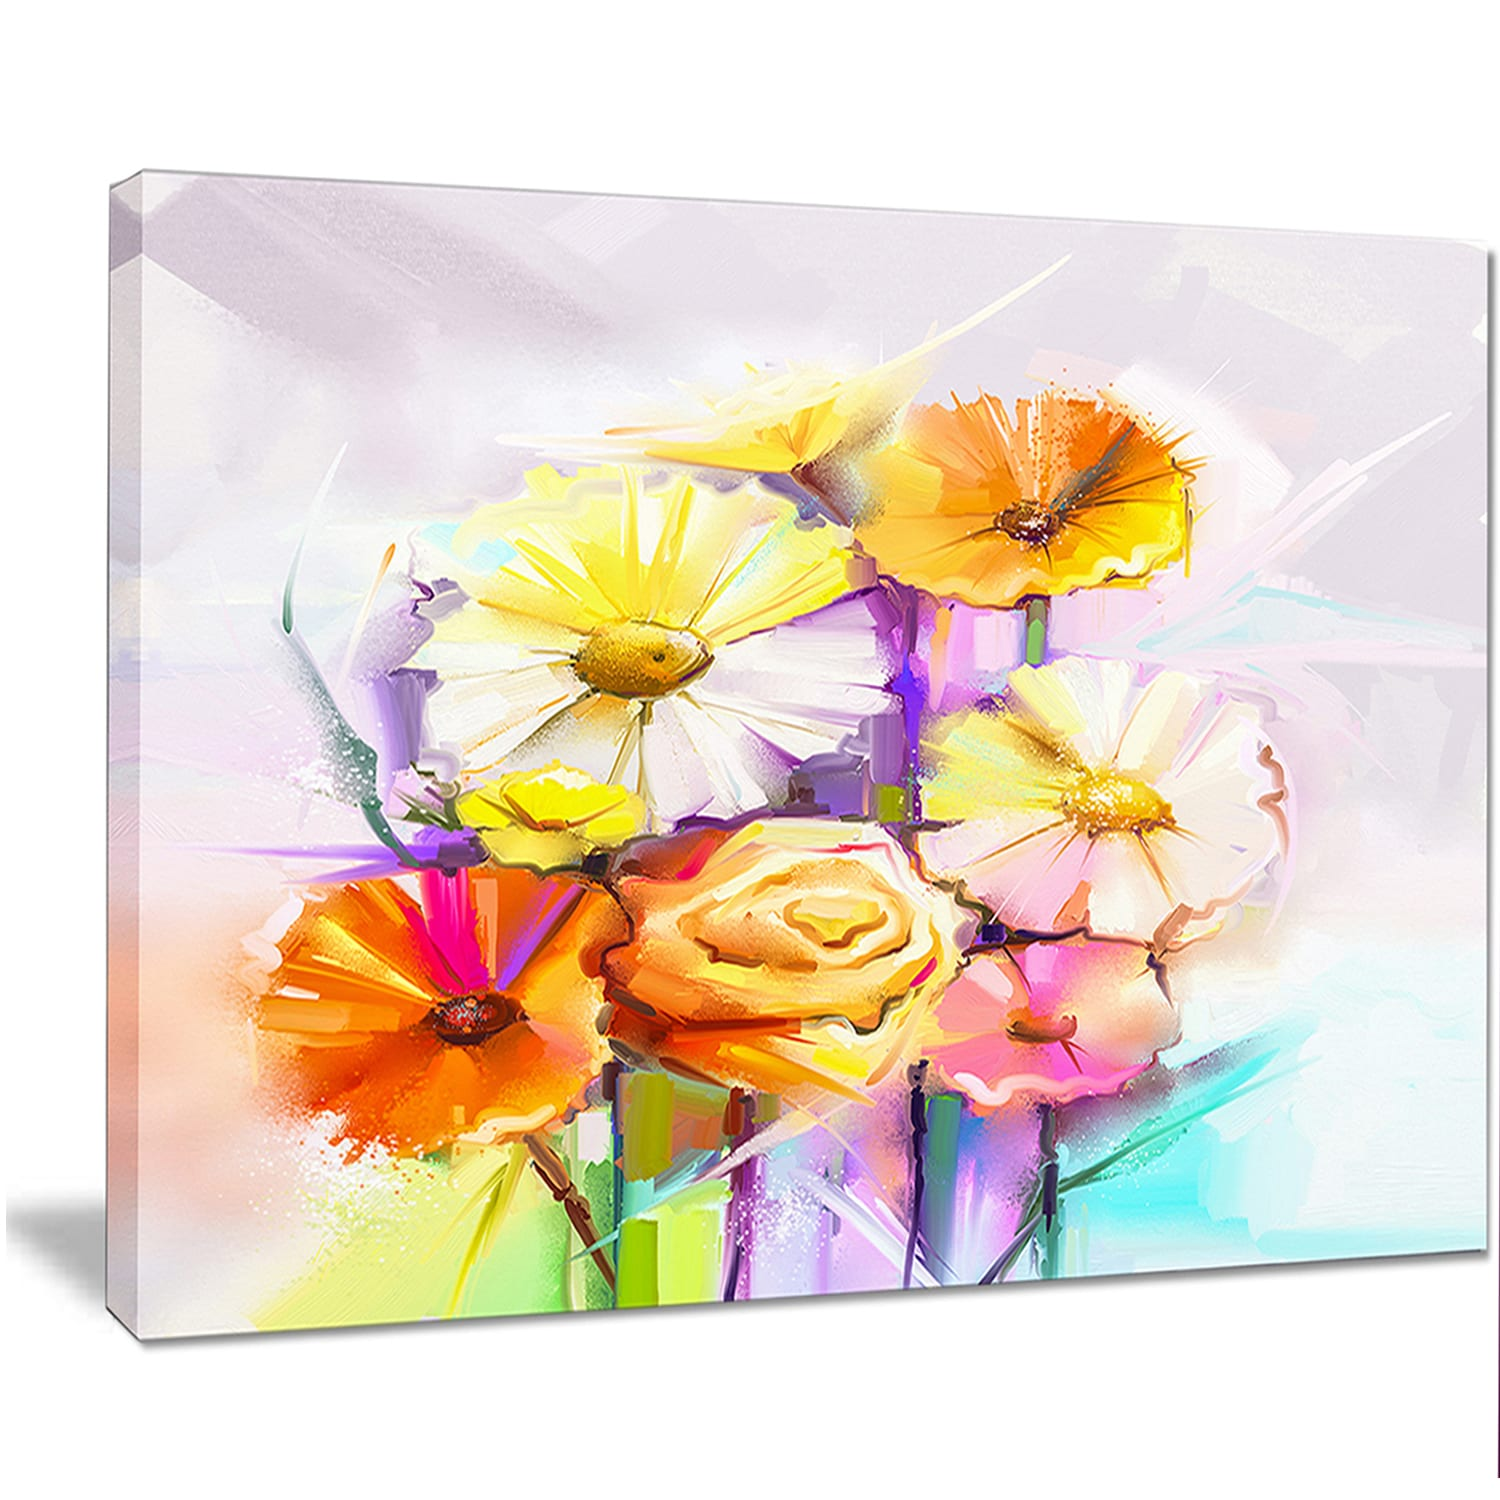 Luxury Floral Wall Art Motif - The Wall Art Decorations ...